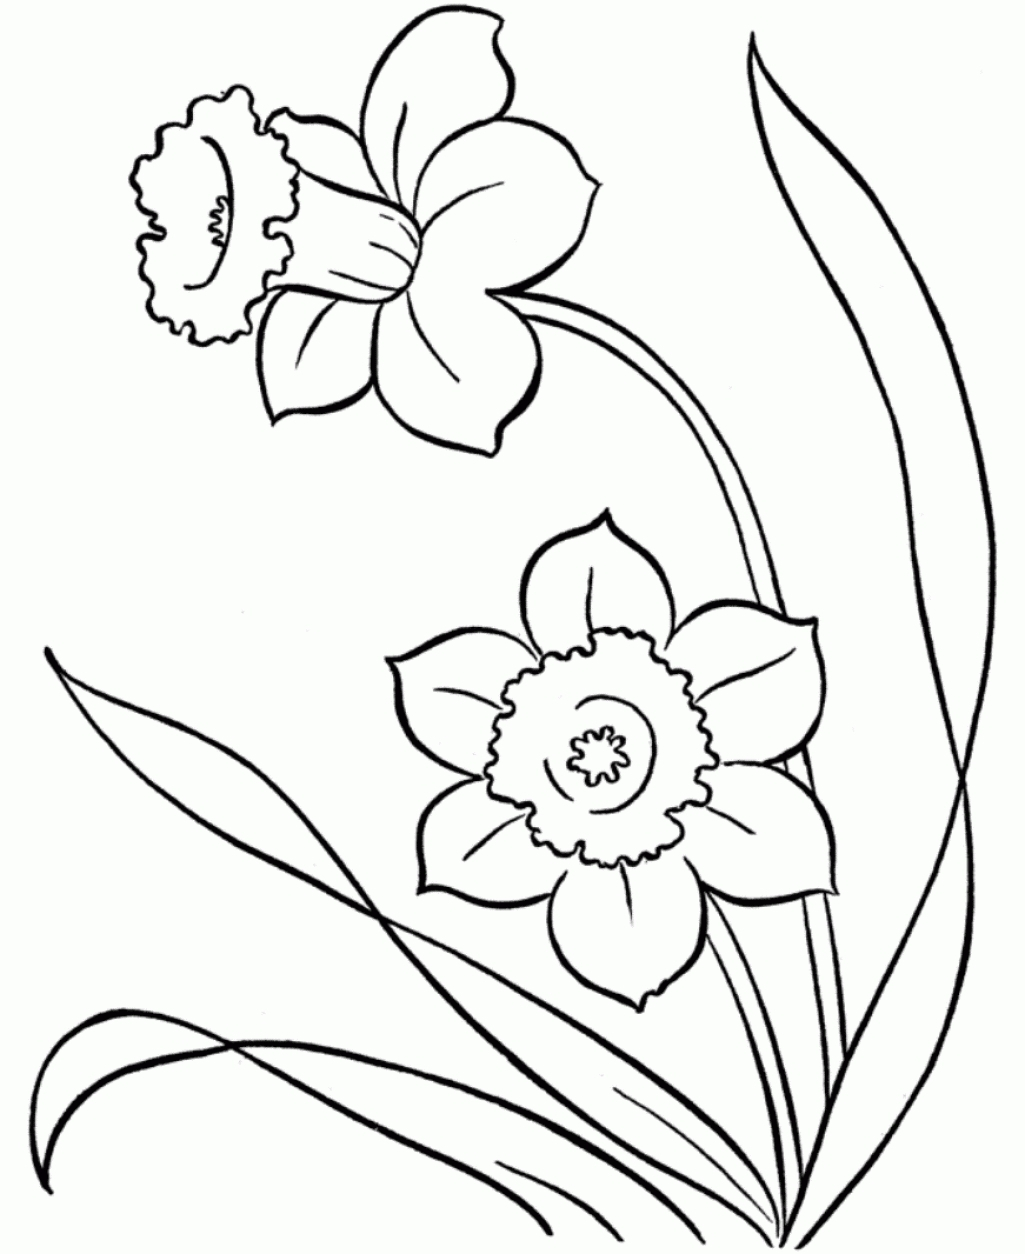 Best Line Drawings Snowdrops Google Search Printable Of New Daffodil Flower Coloring Pages Collection Printable